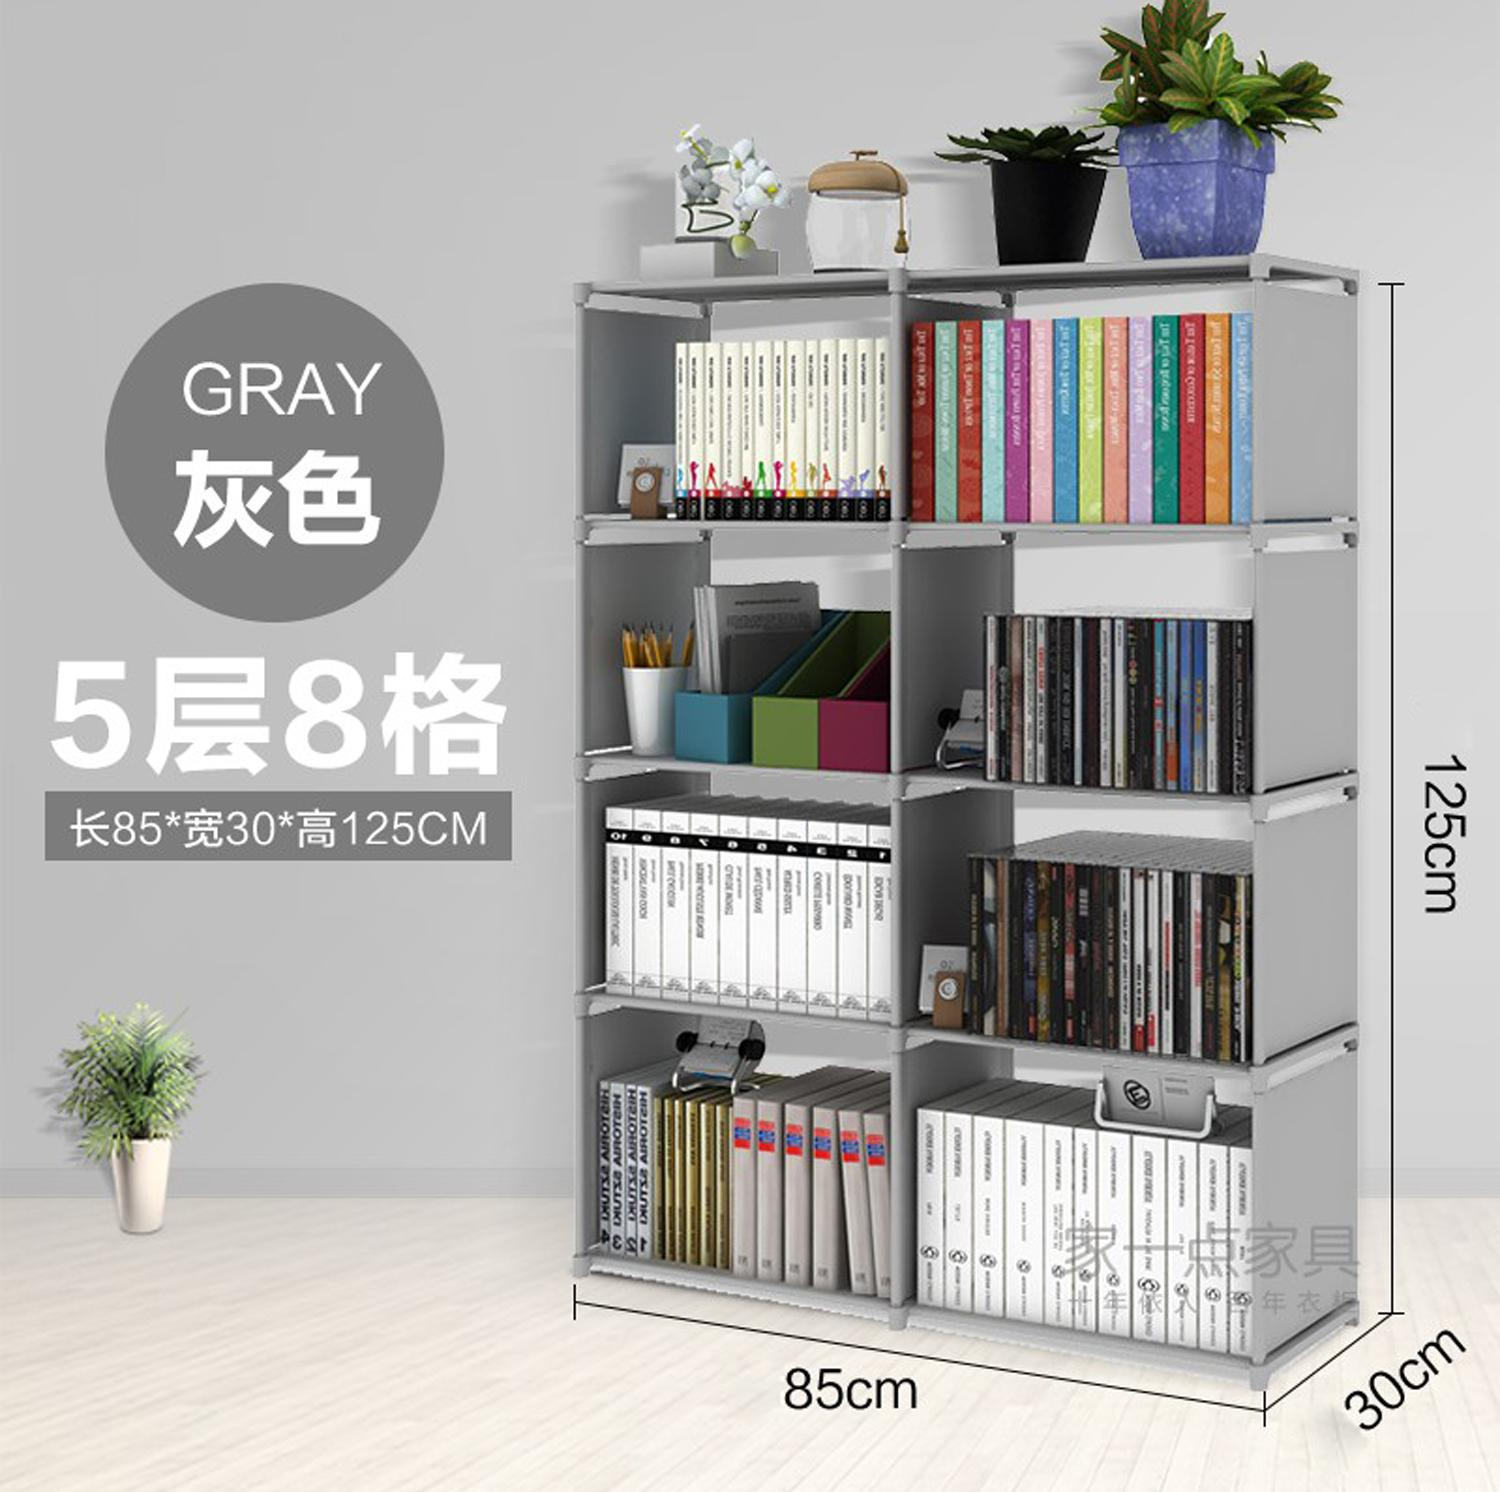 shelf for home shelves brands review floating lazada multi function diy bookshelf storage rack row secret door lock gun safe best vinyl underlayment dvd stand ikea hanging cube